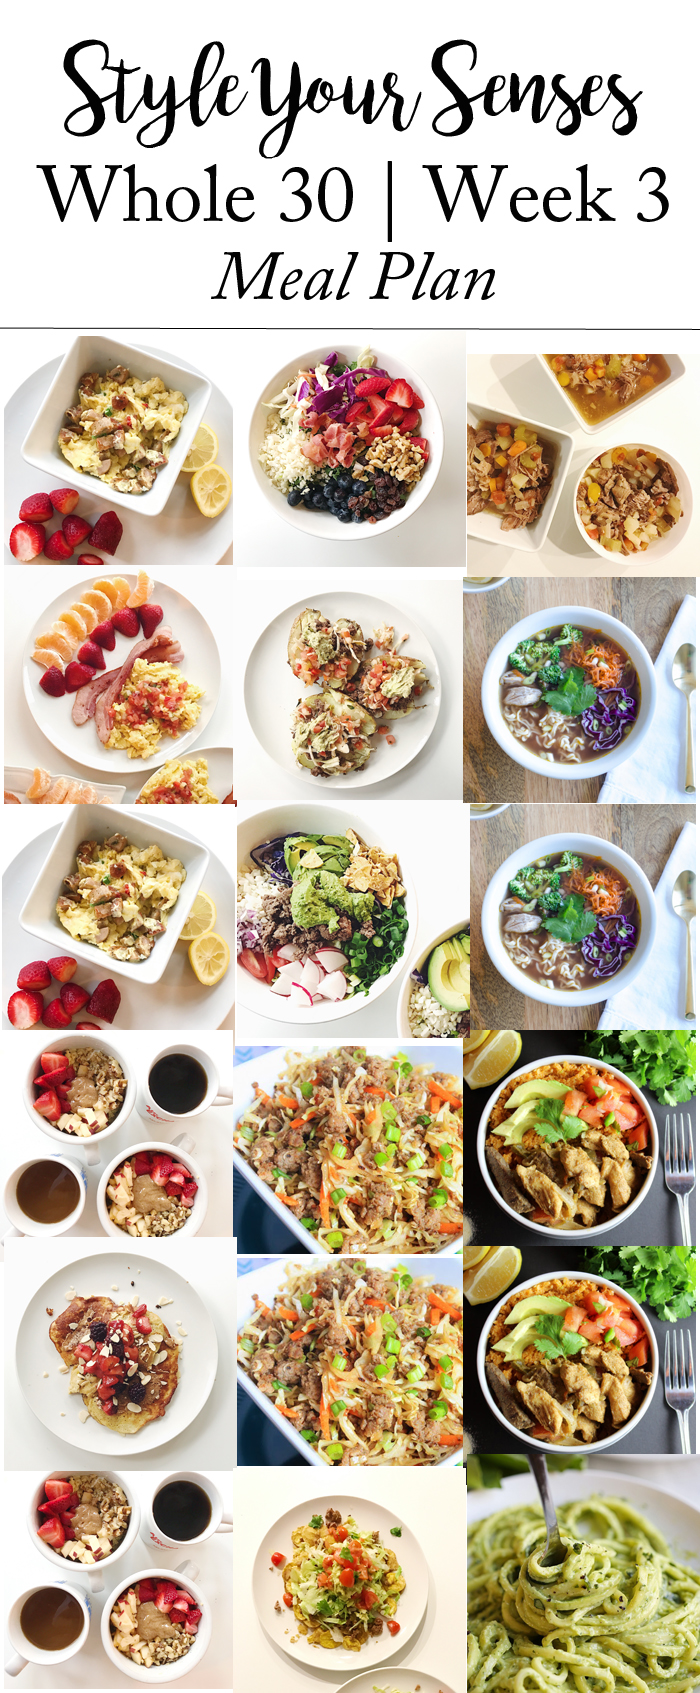 Whole 30 Week 3 meal plan